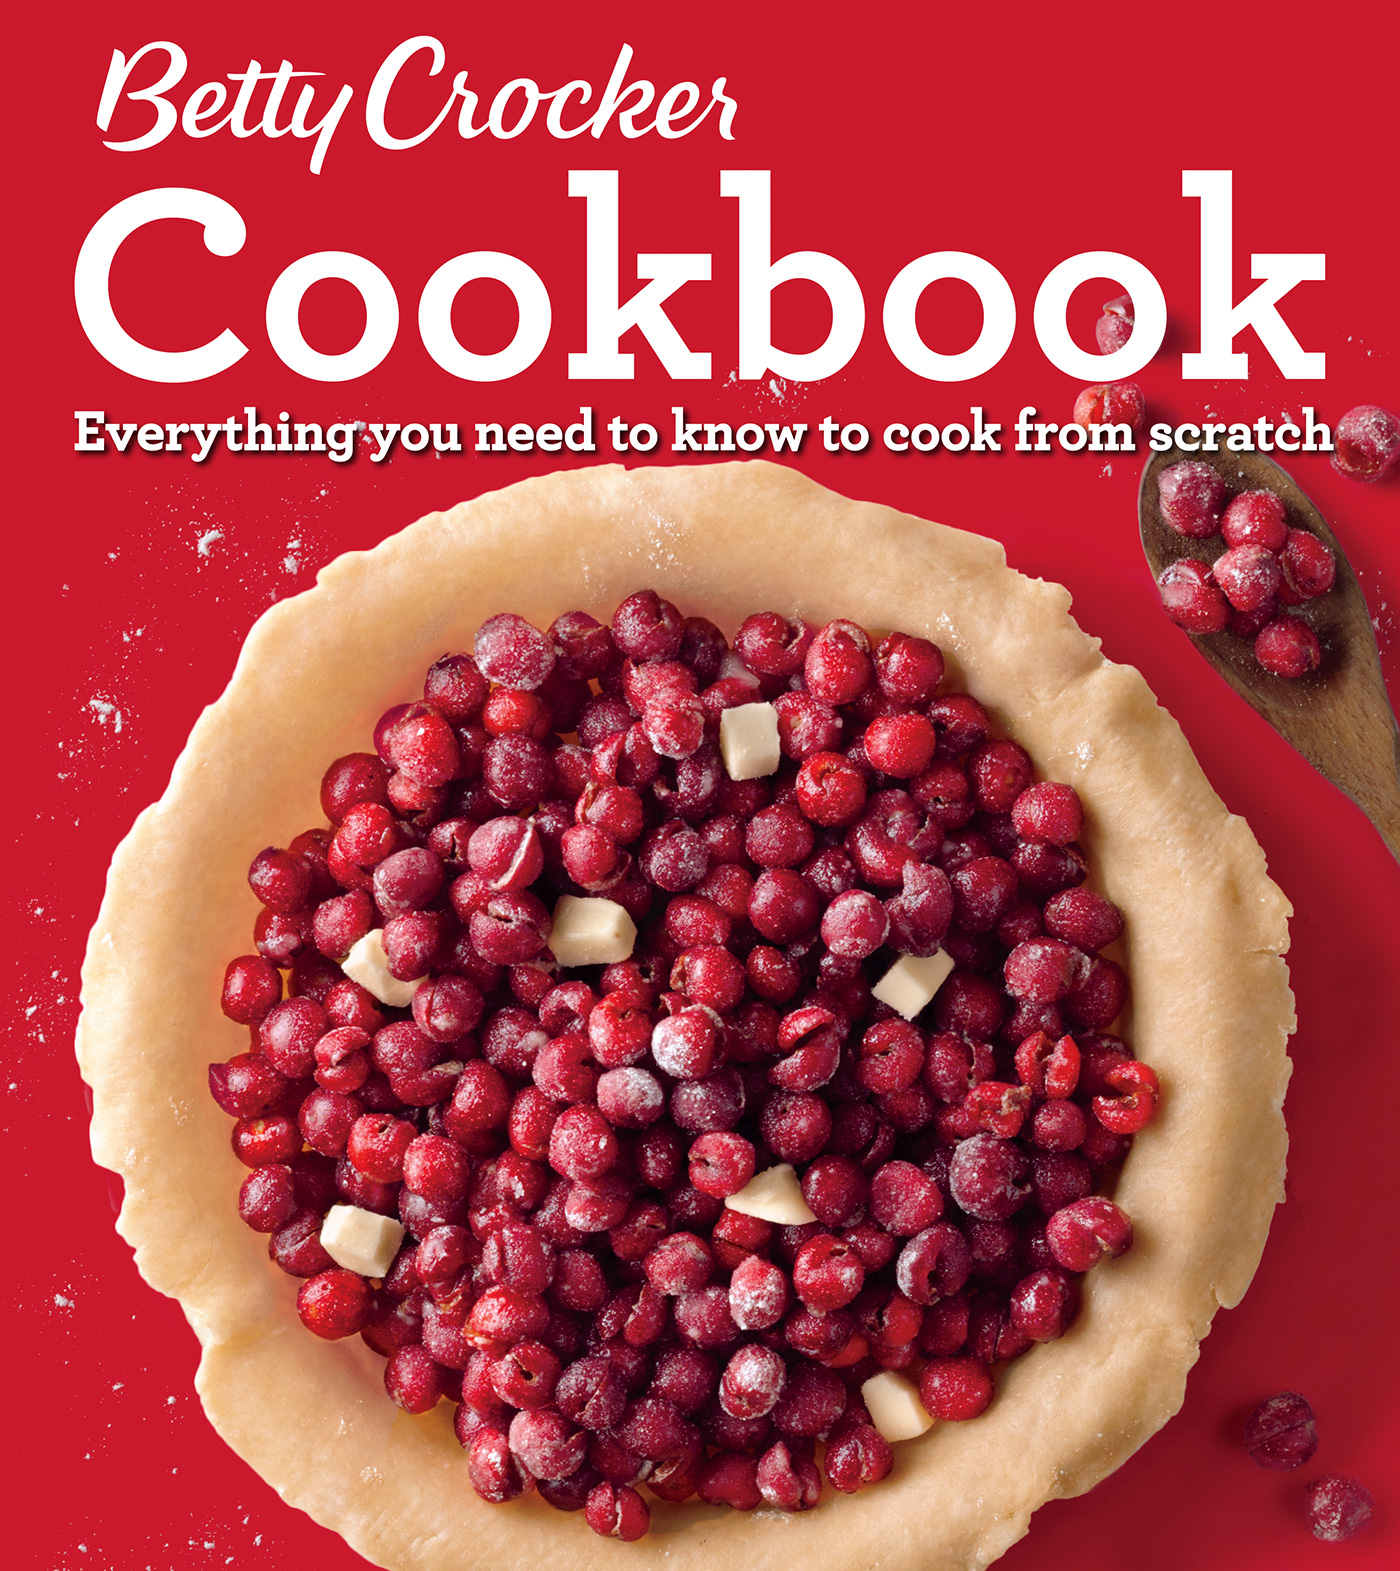 Betty Crocker Cookbook, 12th Edition-9780544648920